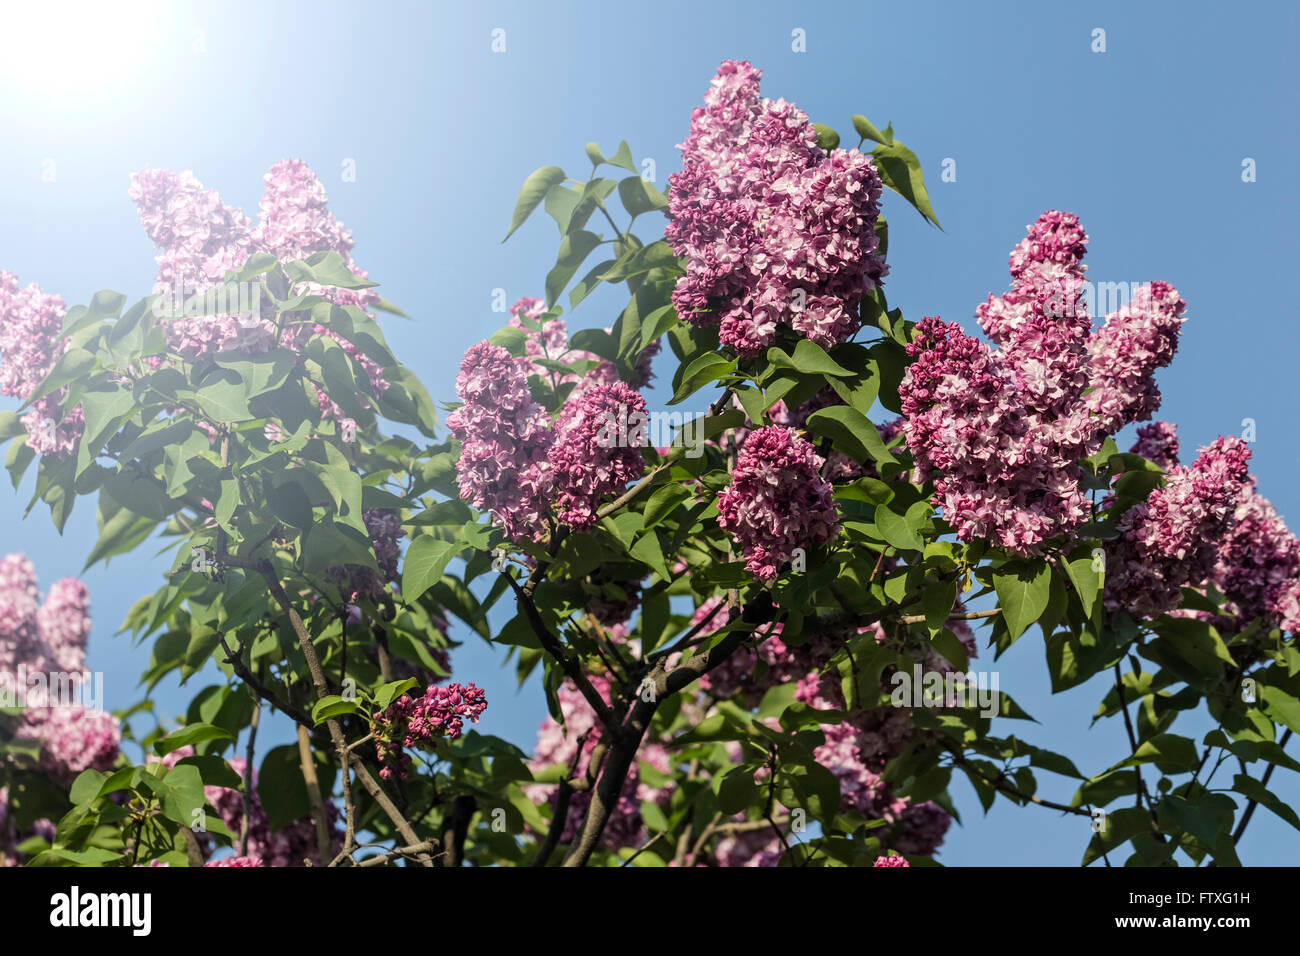 Nice bush terry lilac on blue sky background - Stock Image